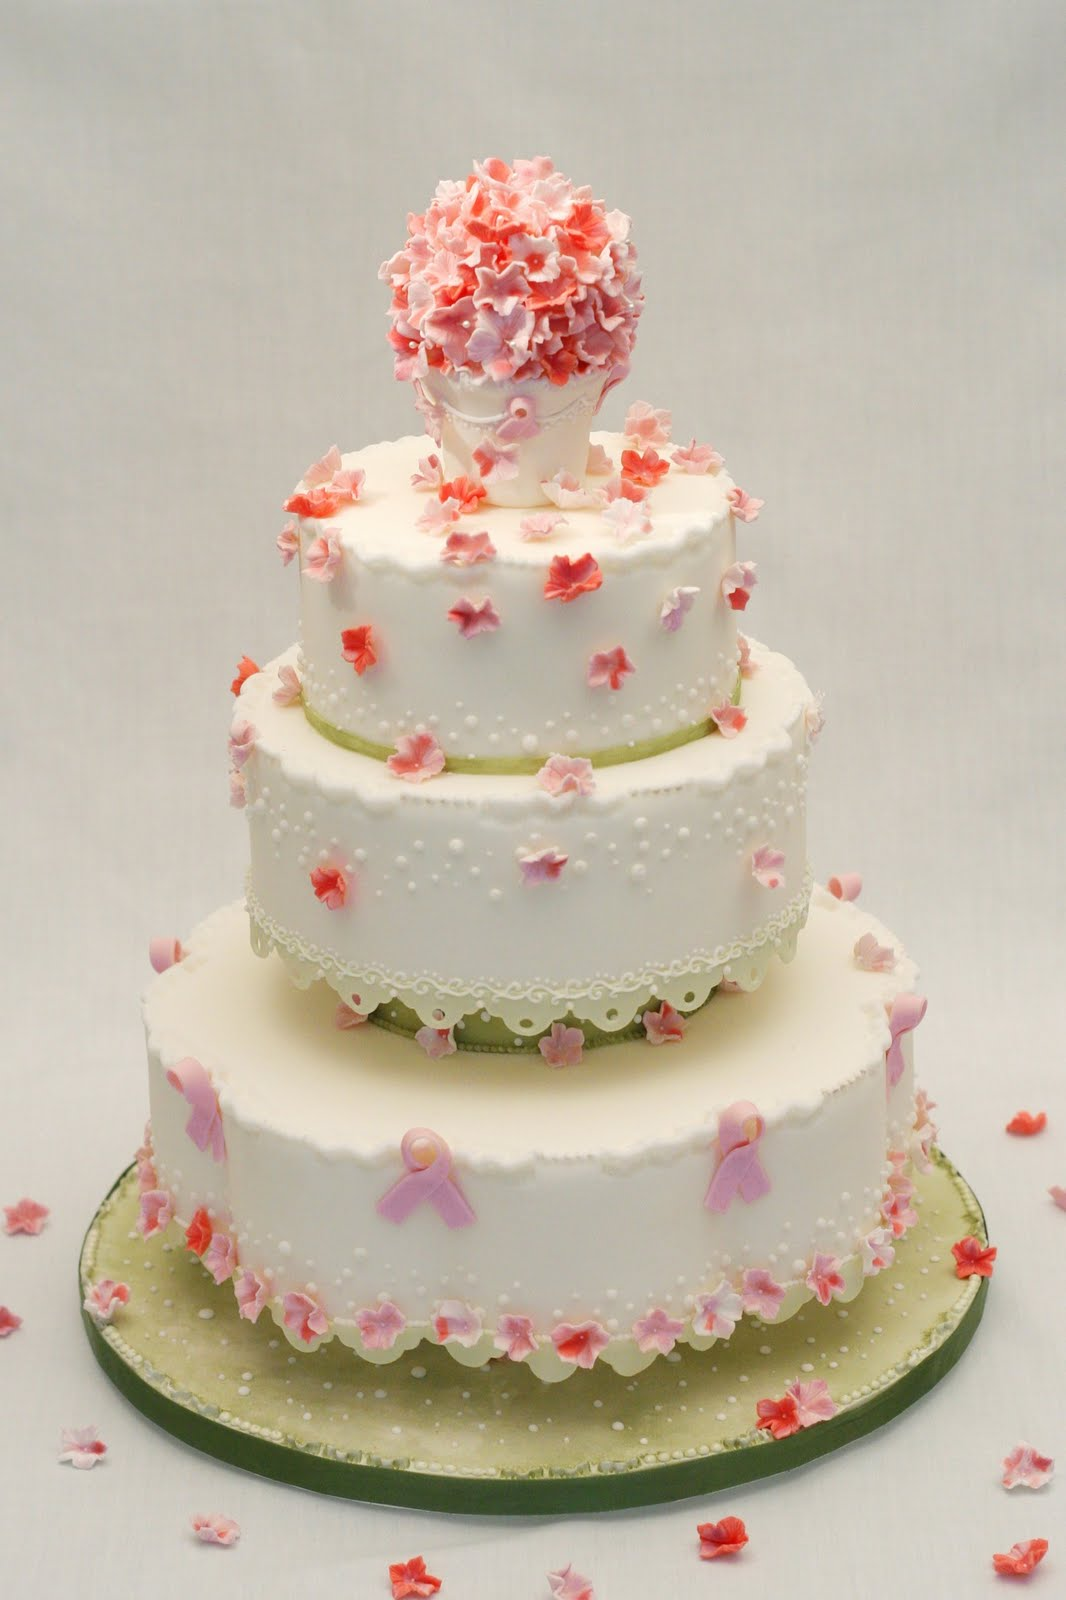 Cake Designs For Wedding : Wedding cake designs for your wedding Modern Wedding ...